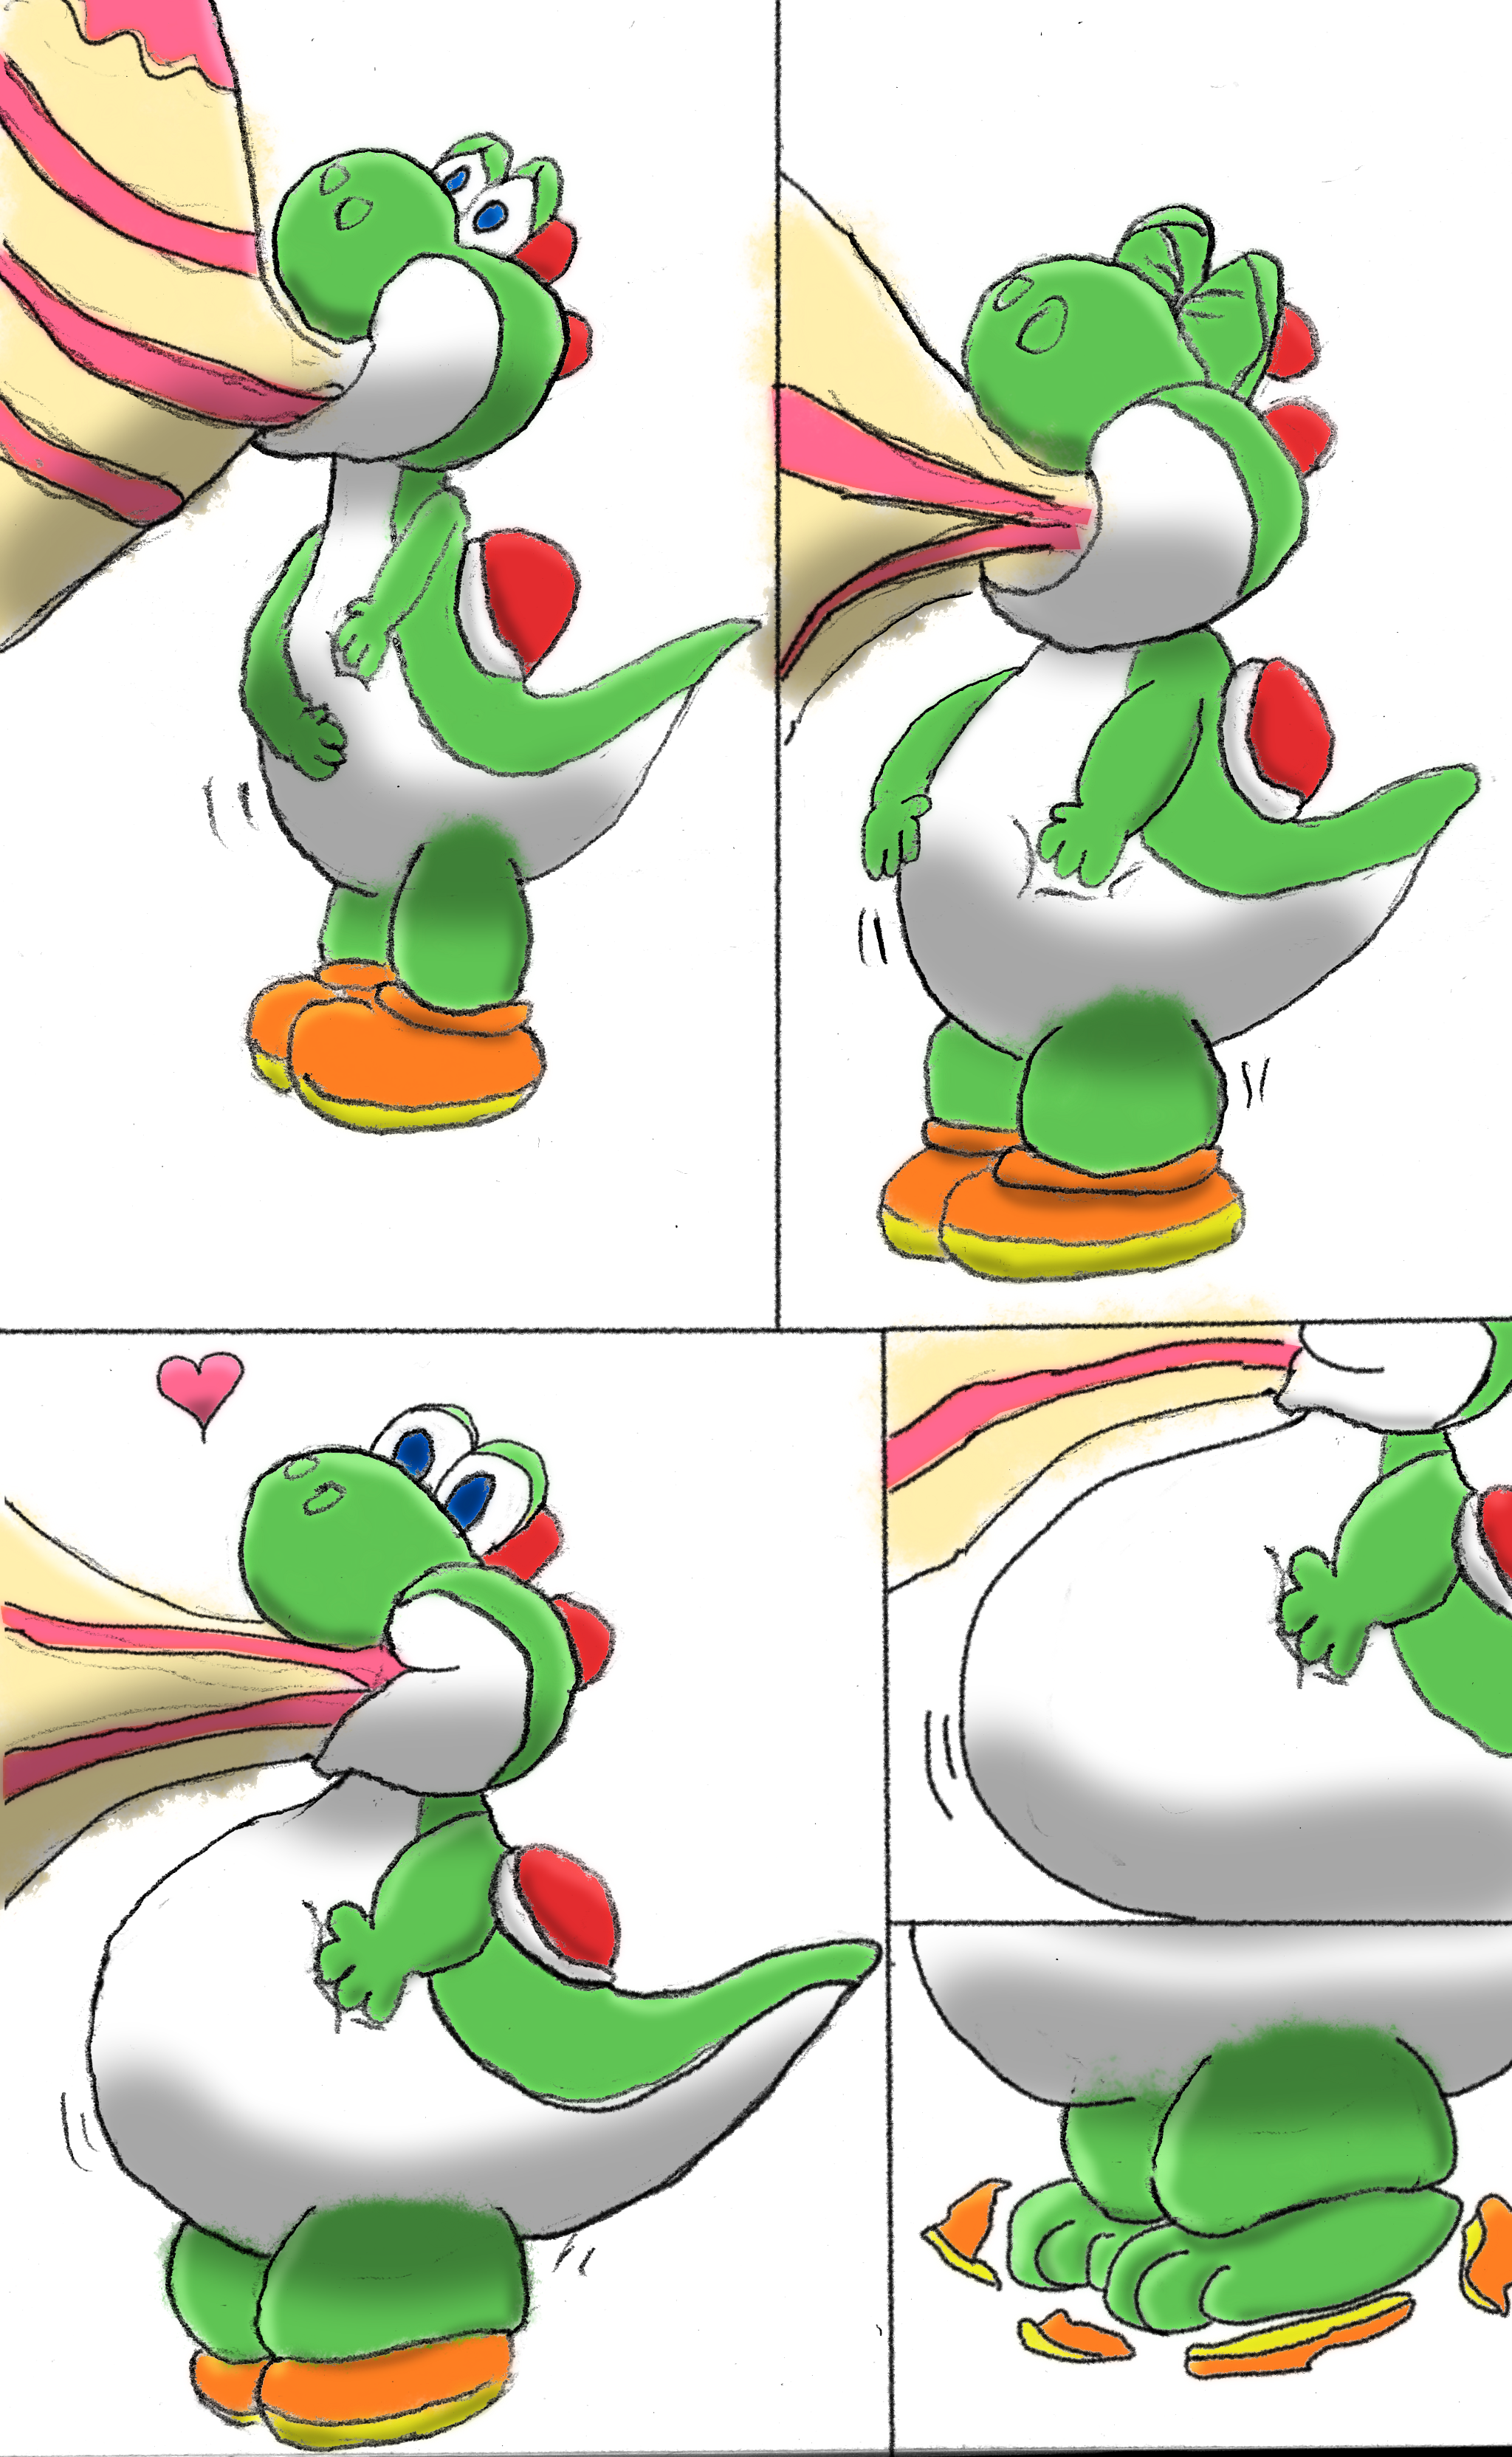 [Comic] Yoshi's surprise 2 of 3 by fatty-piggy